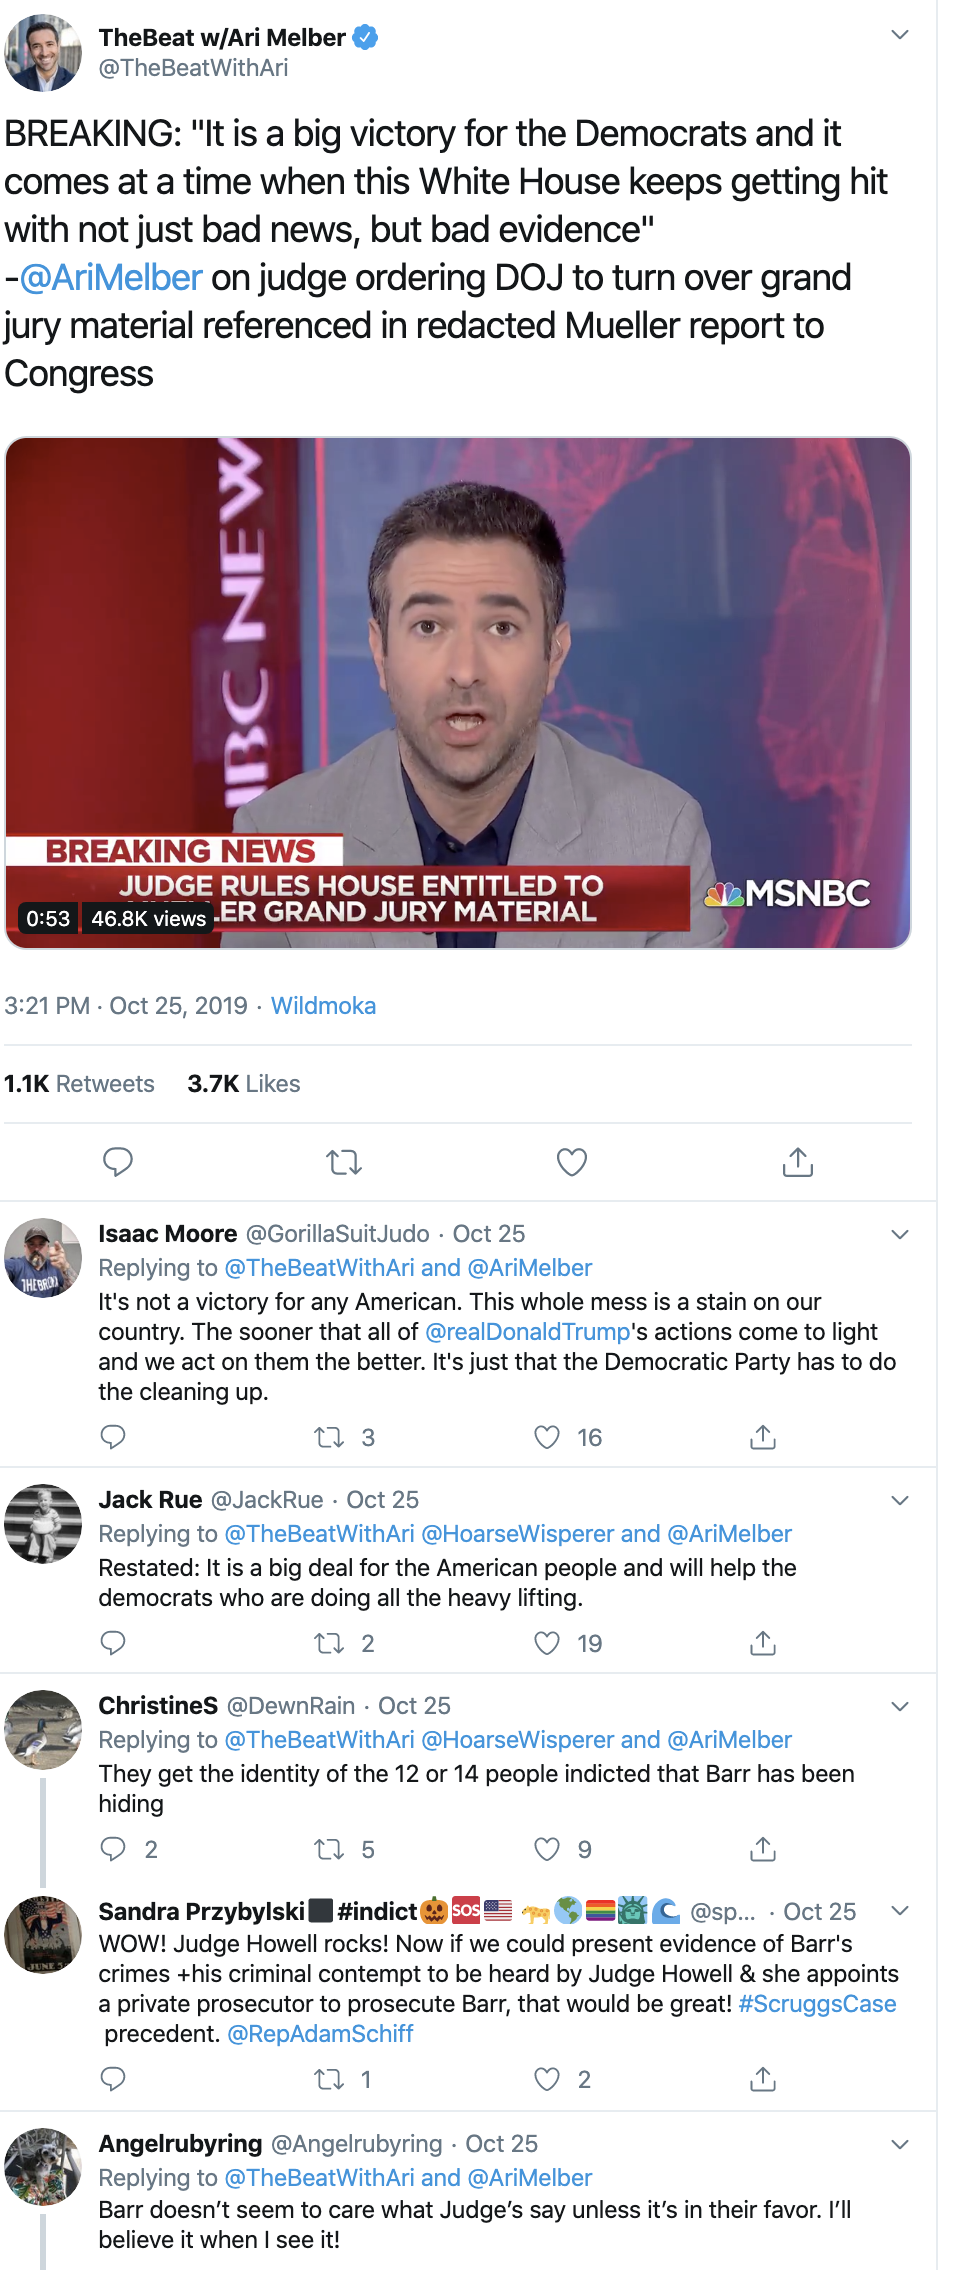 Screen-Shot-2019-10-29-at-1.06.58-PM Judge's Bulletproof Finding Gets Dems Access To Evidence Corruption Crime Domestic Policy Donald Trump Election 2016 Election 2020 Featured Impeachment Investigation Mueller Politics Robert Mueller Top Stories